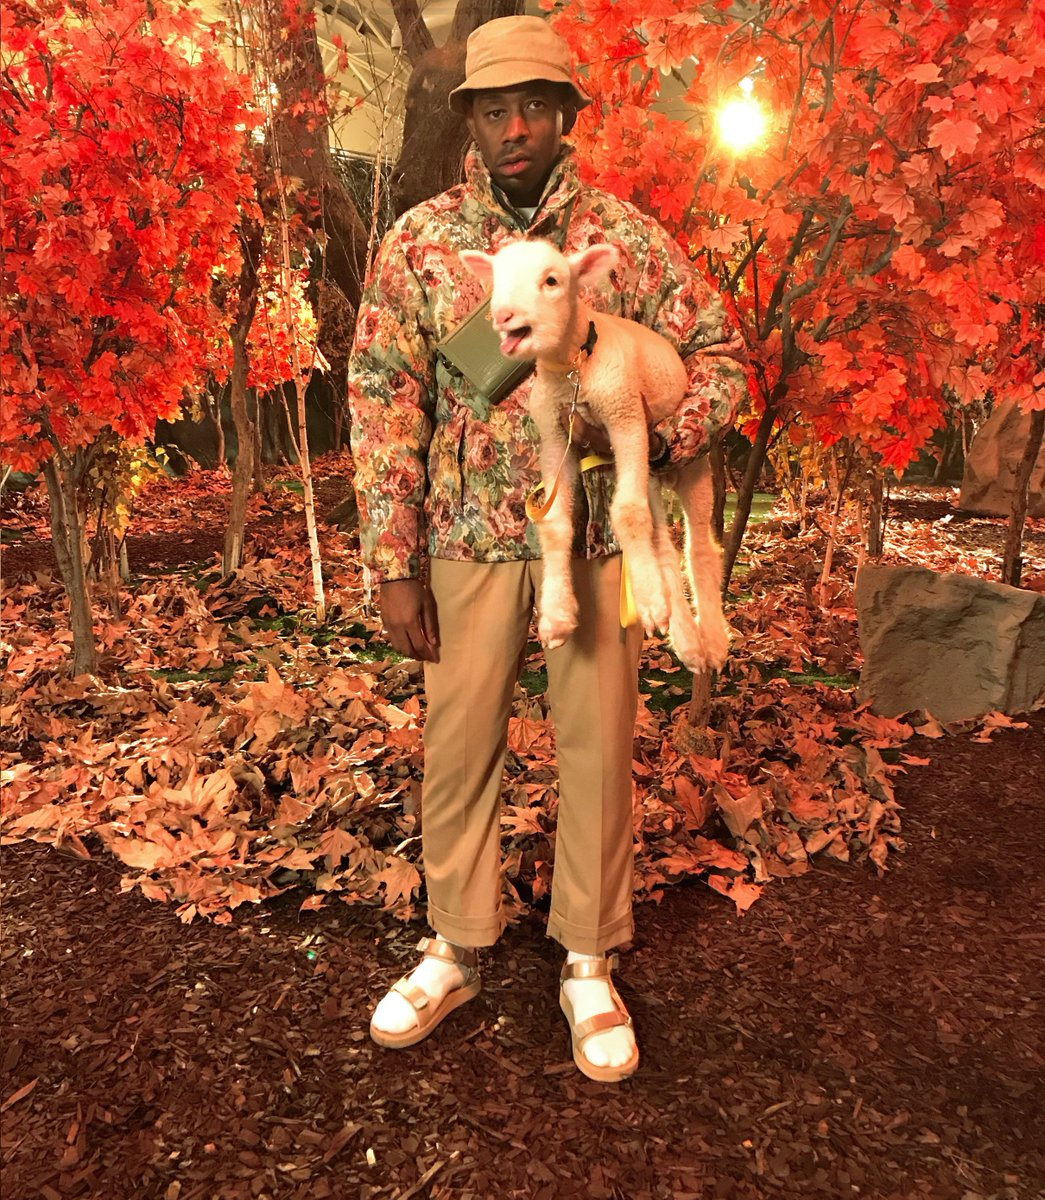 Tyler, The Creator (@tylerthecreator) on Twitter photo 14/12/2018 17:30:03